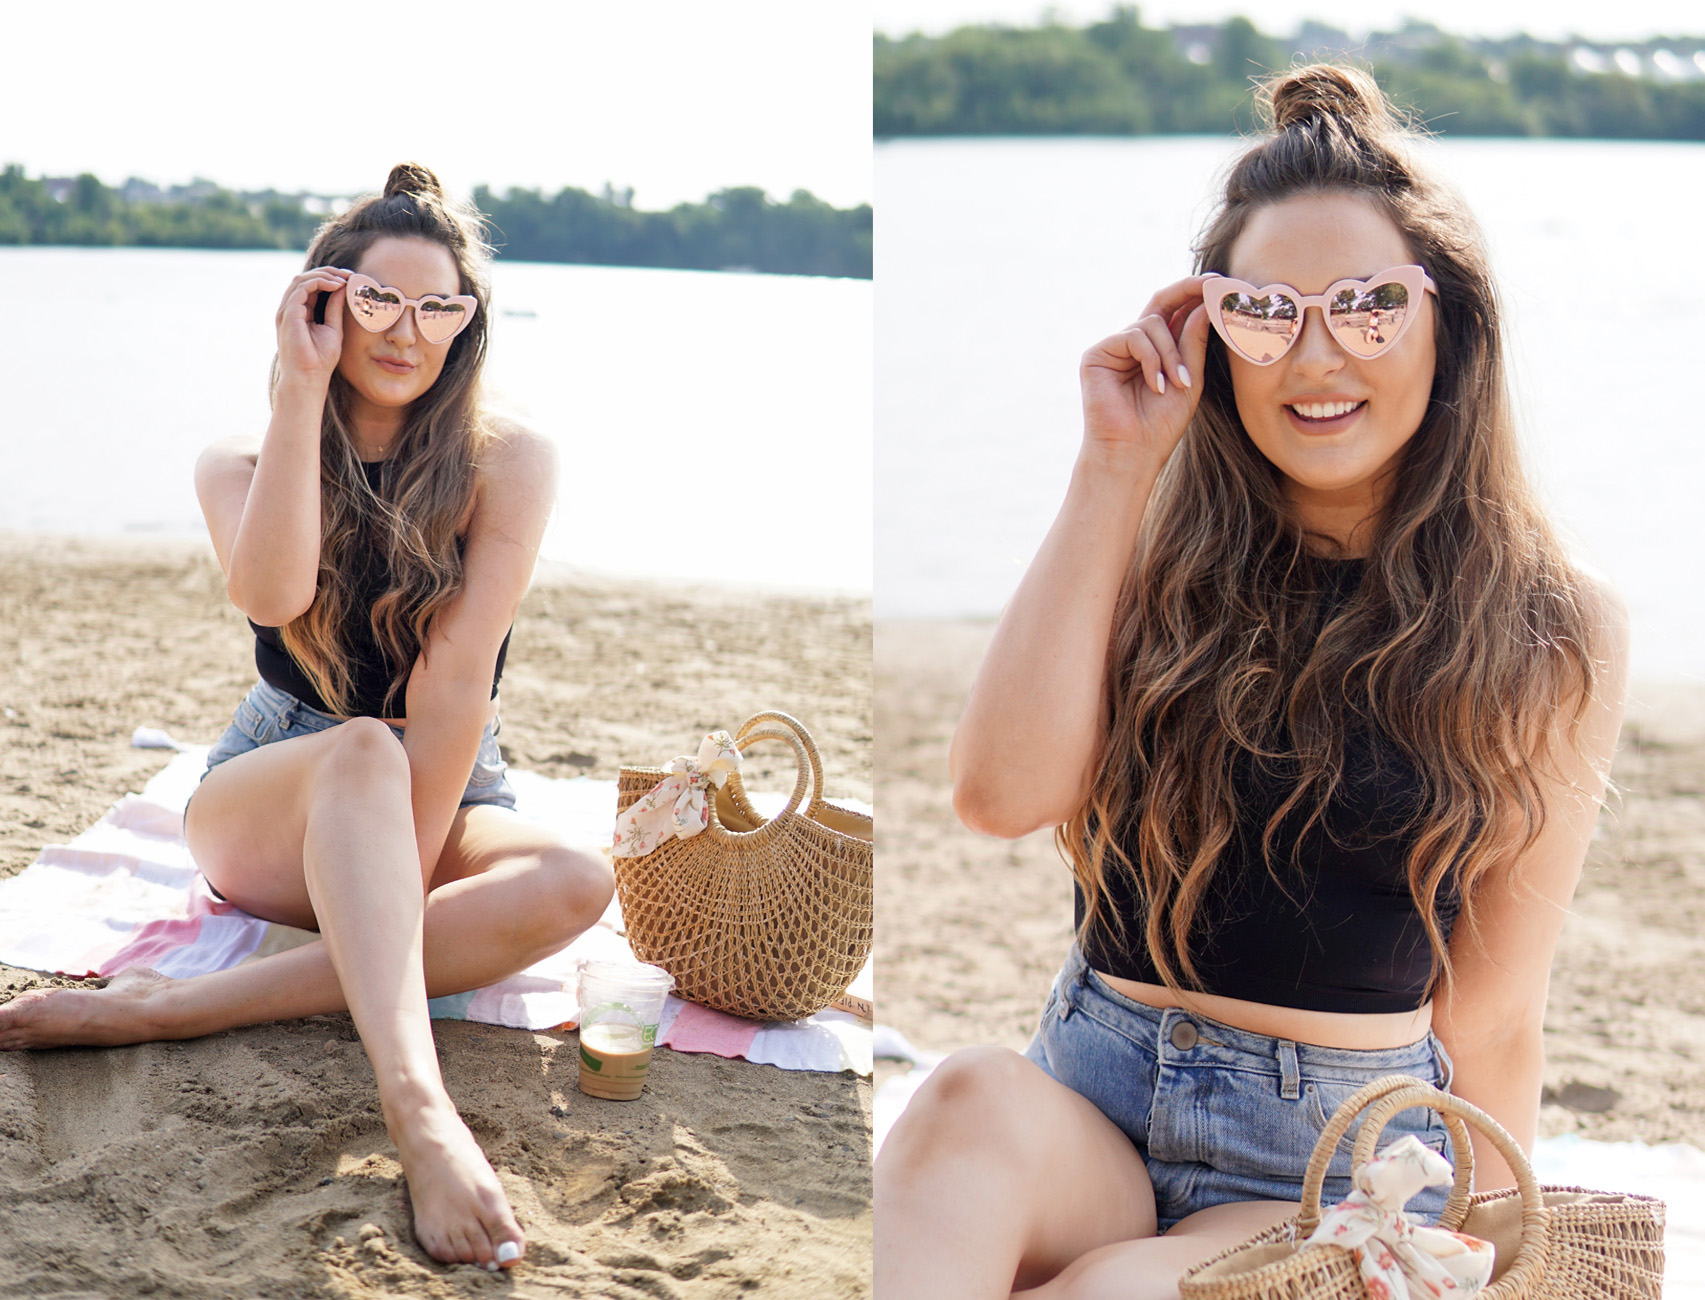 Mash Elle beauty blogger | diy topknot | topknot tutorial | summer beach| topknot hair style idea| heart sunglasses | black crop top | jean shorts |